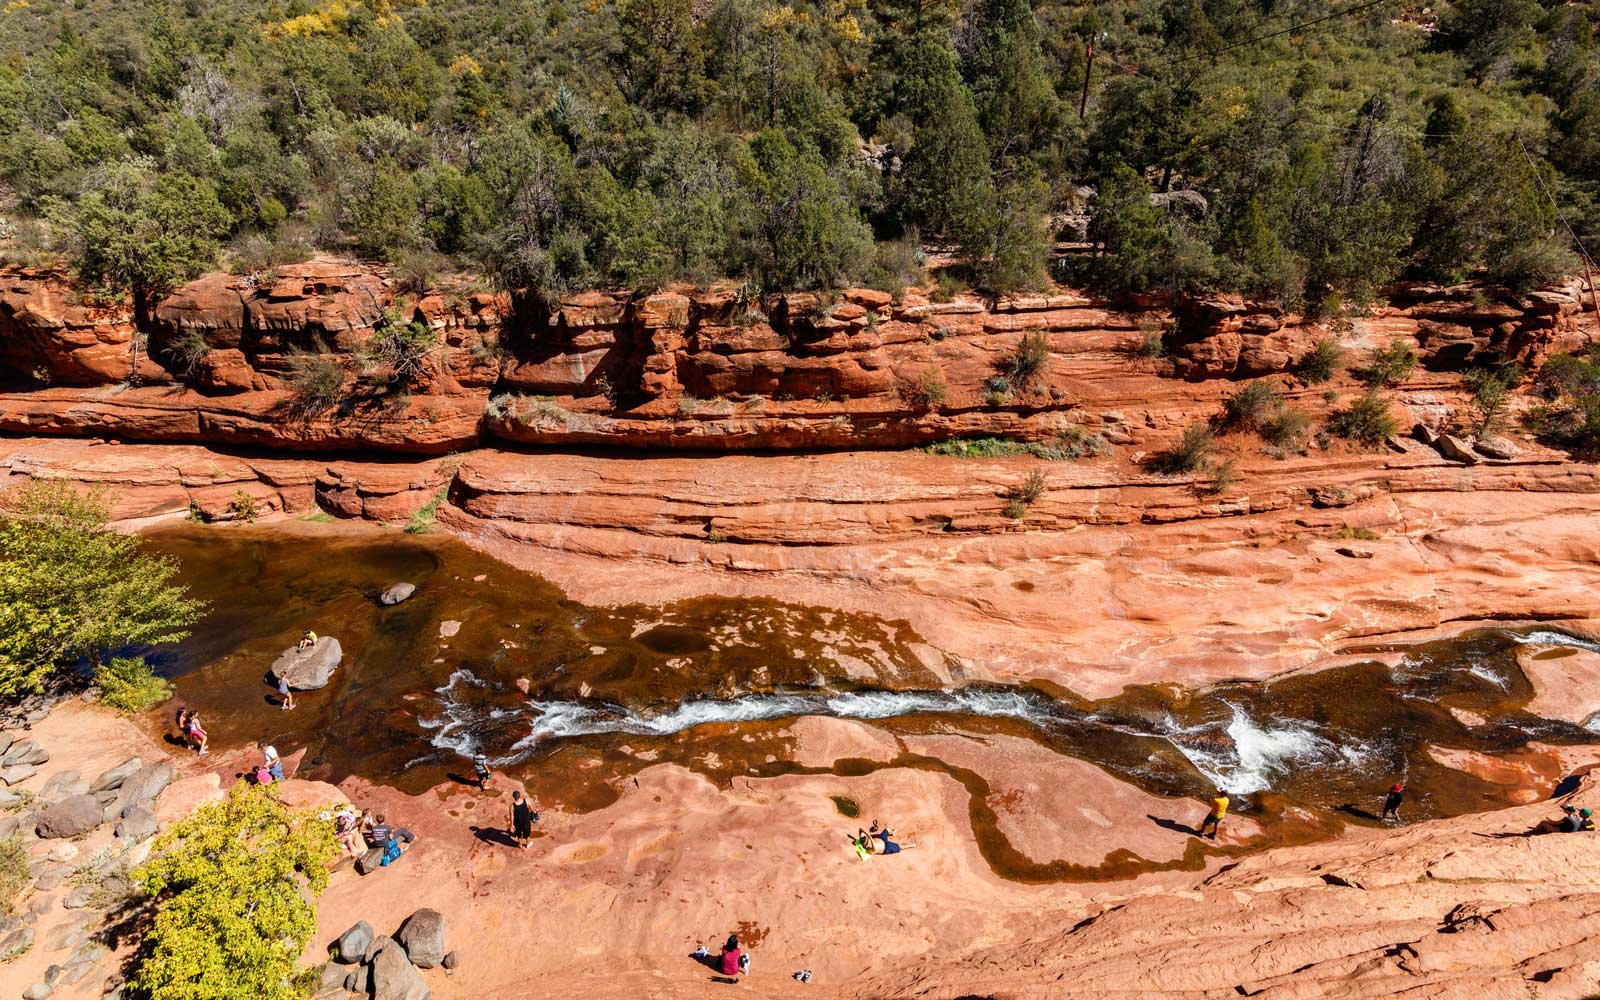 This All-natural Red Rock Waterslide Is Cooler Than Anything at a Theme Park